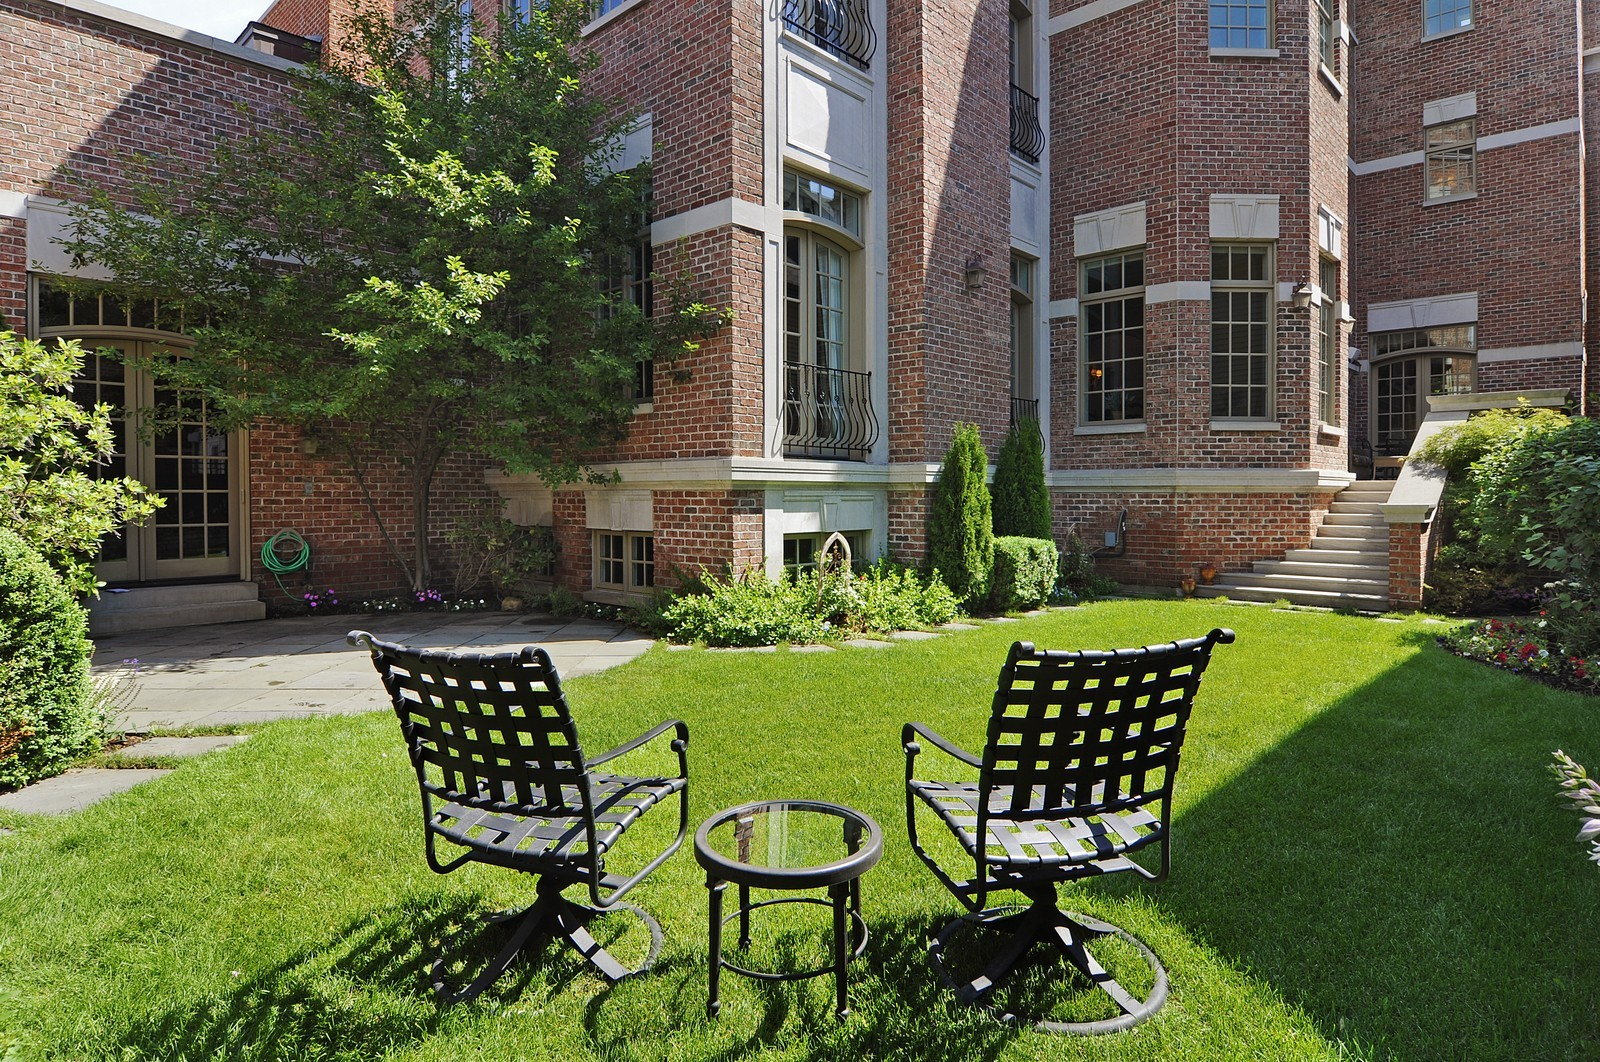 1956 n orchard chicago il 60614 virtual tour coldwell